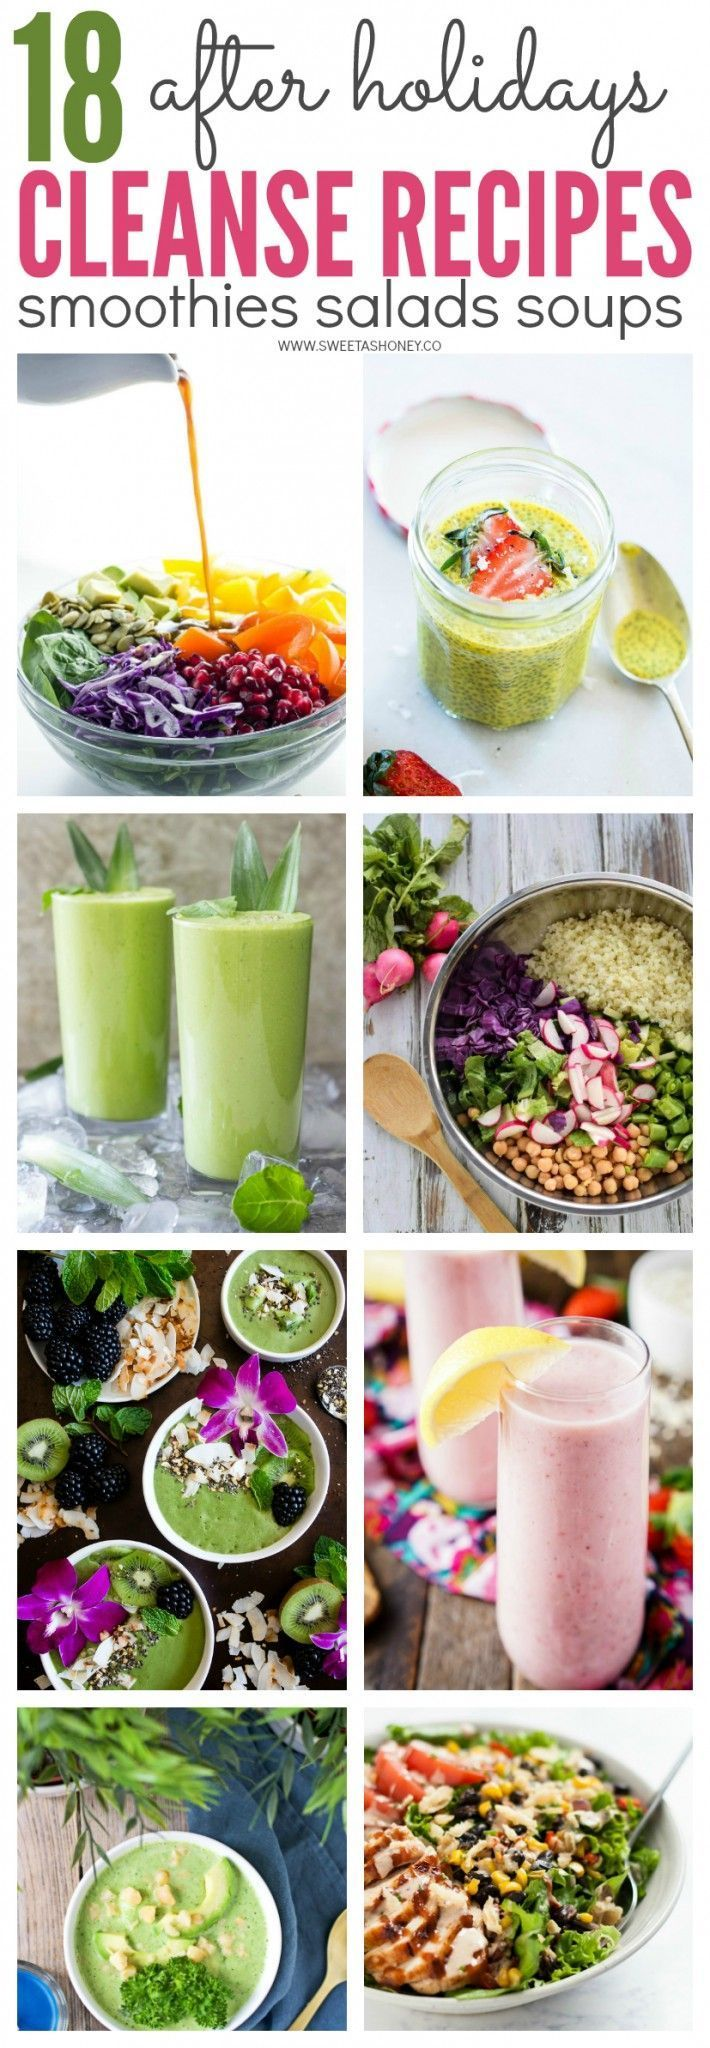 after holidays cleanse recipes.Juice, soup, smoothie, clean eating recipes to detox to lose weight after Christmas and New Year.